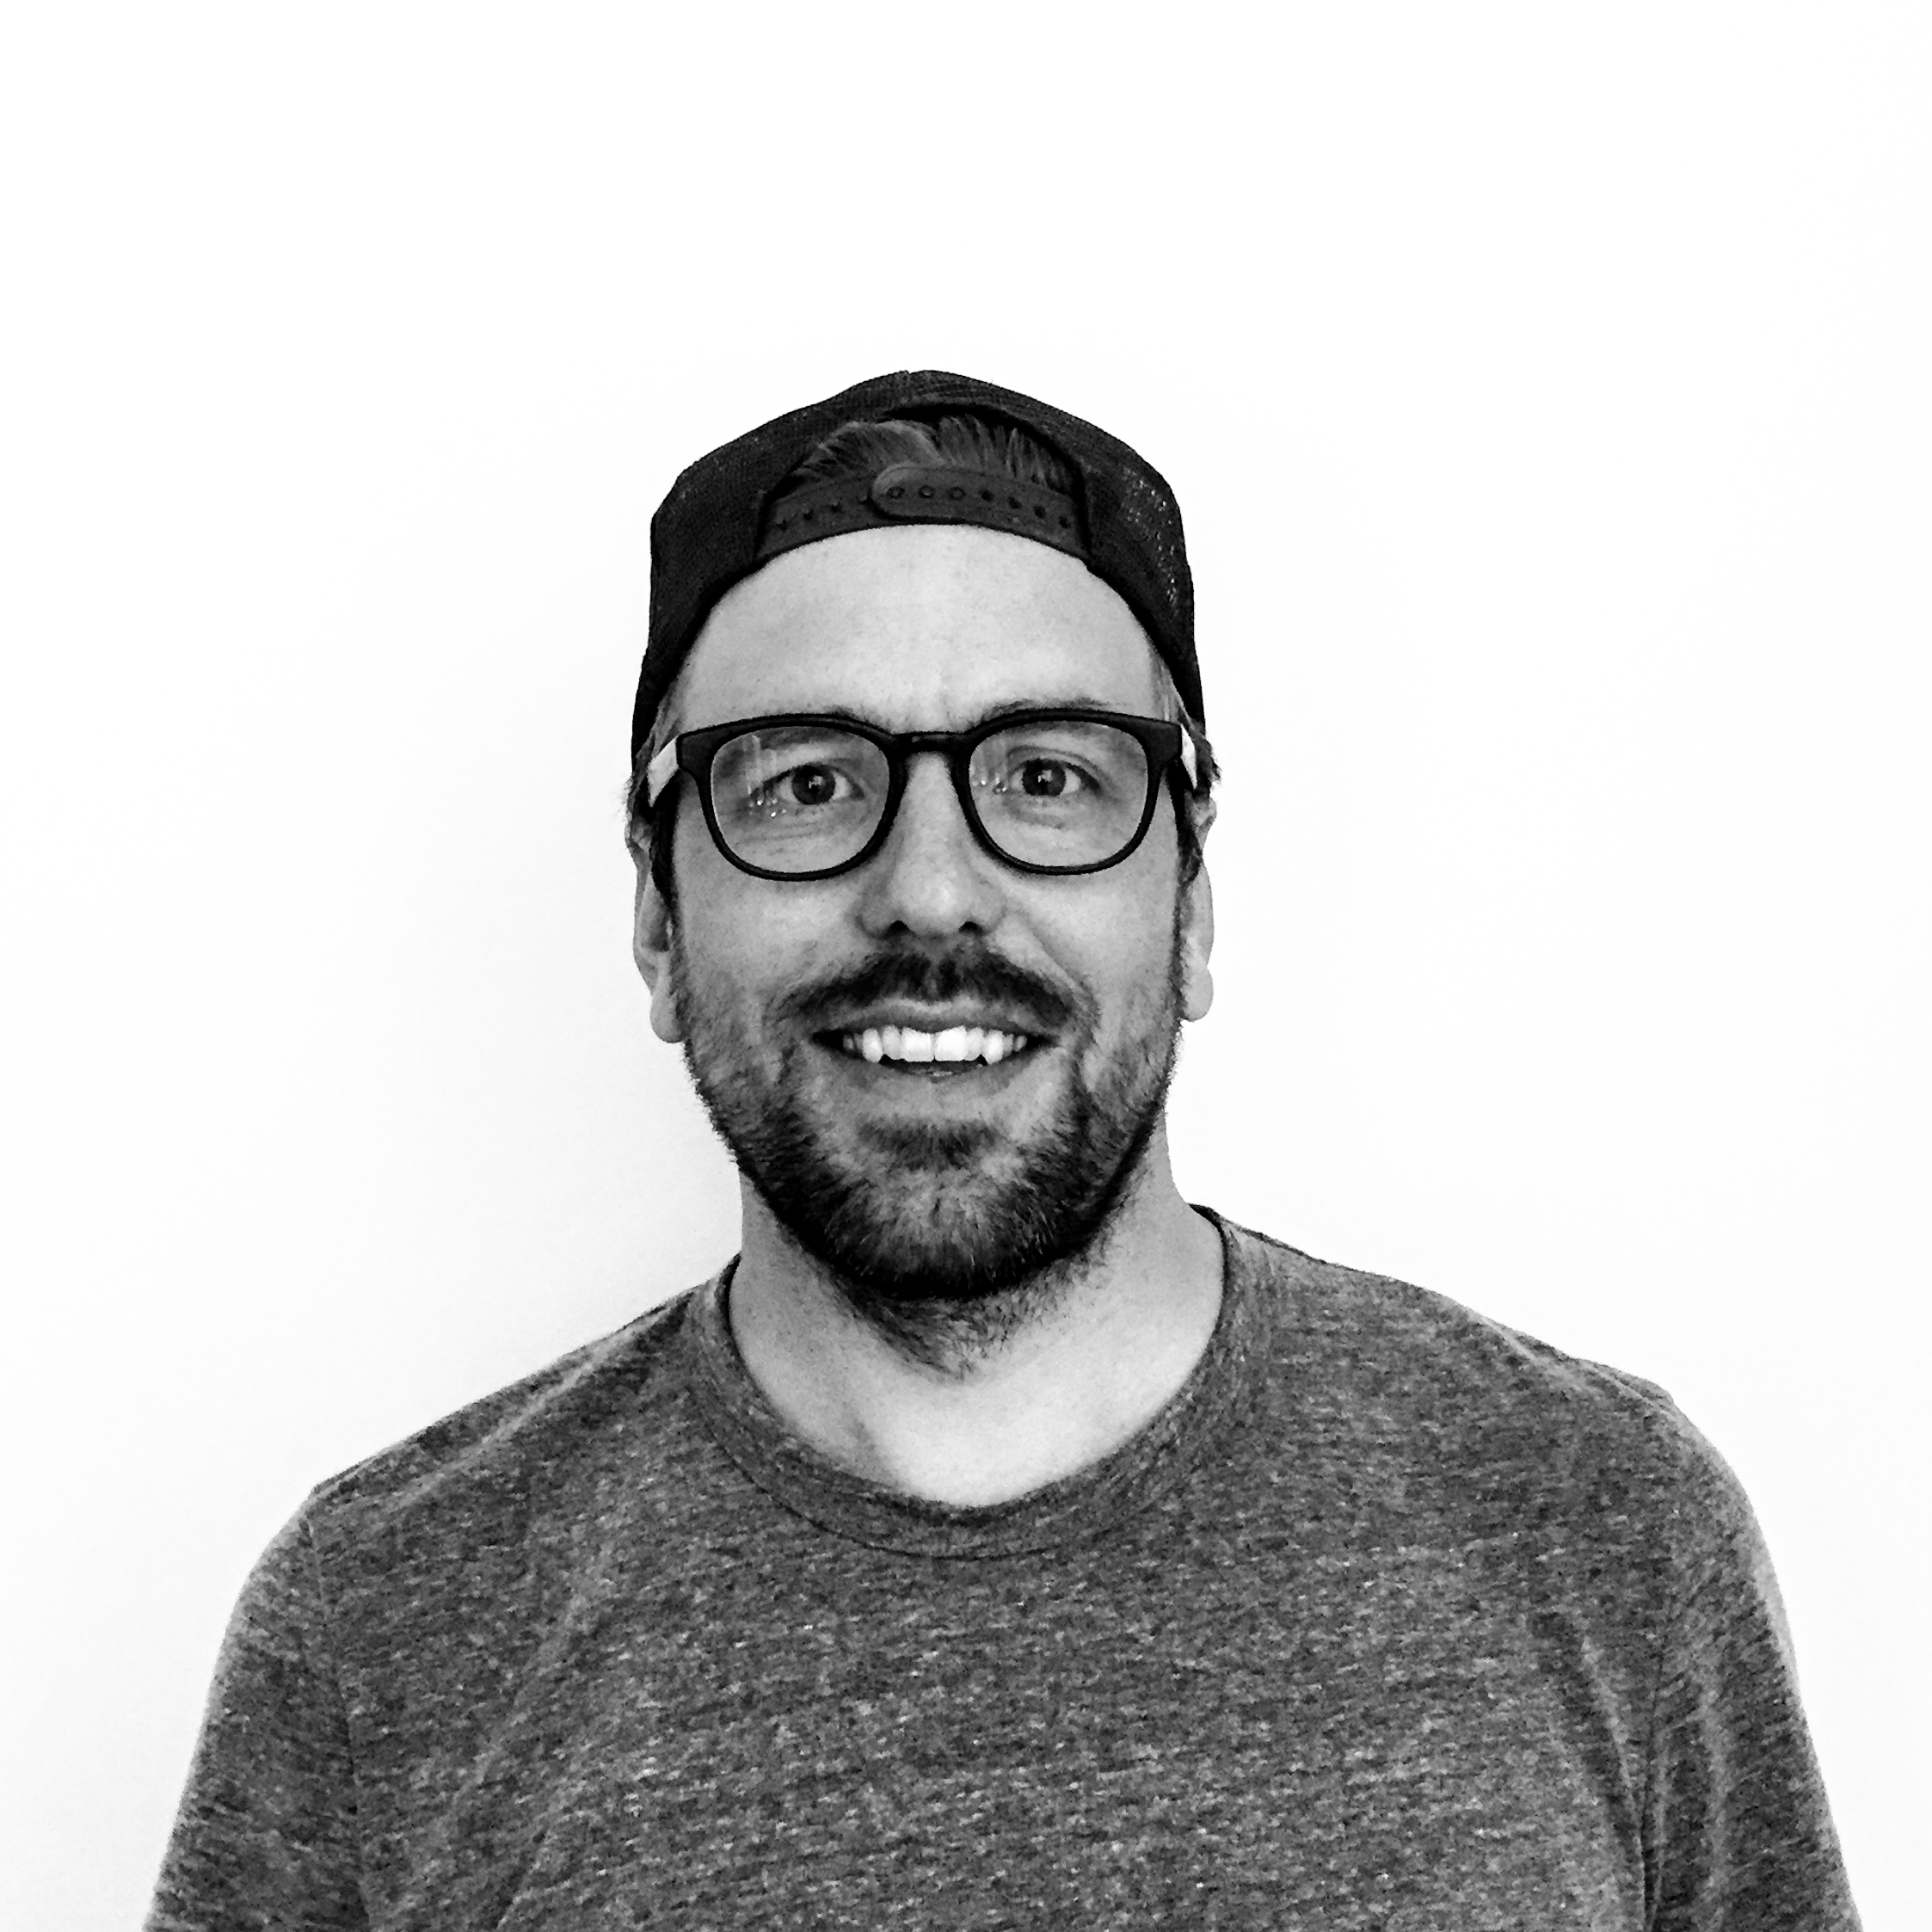 Grant Dupré / VP, Product Design - grant@sidfactor.com /// Grant is a seasoned outdoor industry professional. He started his career at Sid and has worked at SIDFACTOR for 13 years. He has created award winning products and successful collections for both big box brands and specialty brands in the outdoor, cycling, yoga, fishing and hunting spaces. He is currently the Director of Product Design at SIDFACTOR leading a the design and creative team. When he is not working on new products, he is riding a mountain bike, or outside somewhere spending time with his wife and 3 year old son.